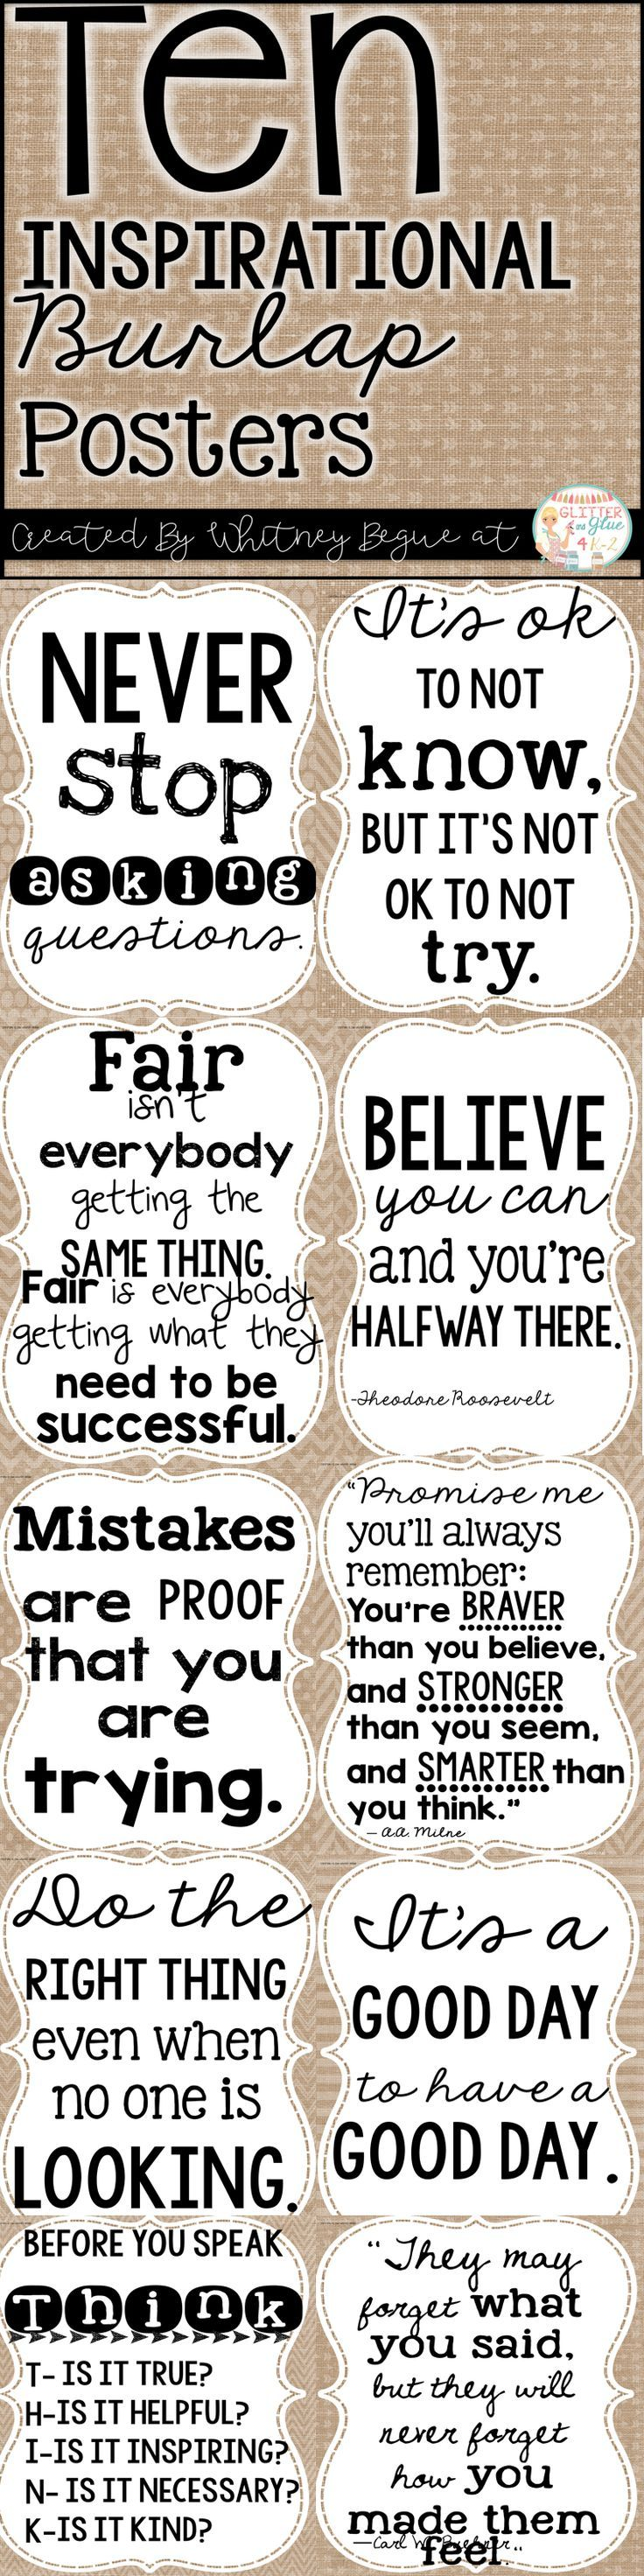 Looking for something inspirational to brighten up your classroom? These posters include ten of my favorite classroom quotes. Easy, inexpensive, and a fun way to decorate your classroom! Keywords: shiplap, farmhouse classroom, burlap, watercolor, teachers, chalk theme classroom , burlap classroom, rustic classroom, farmhouse decor,  classroom inspiration, inspirational quotes, positive classroom, growth mindset